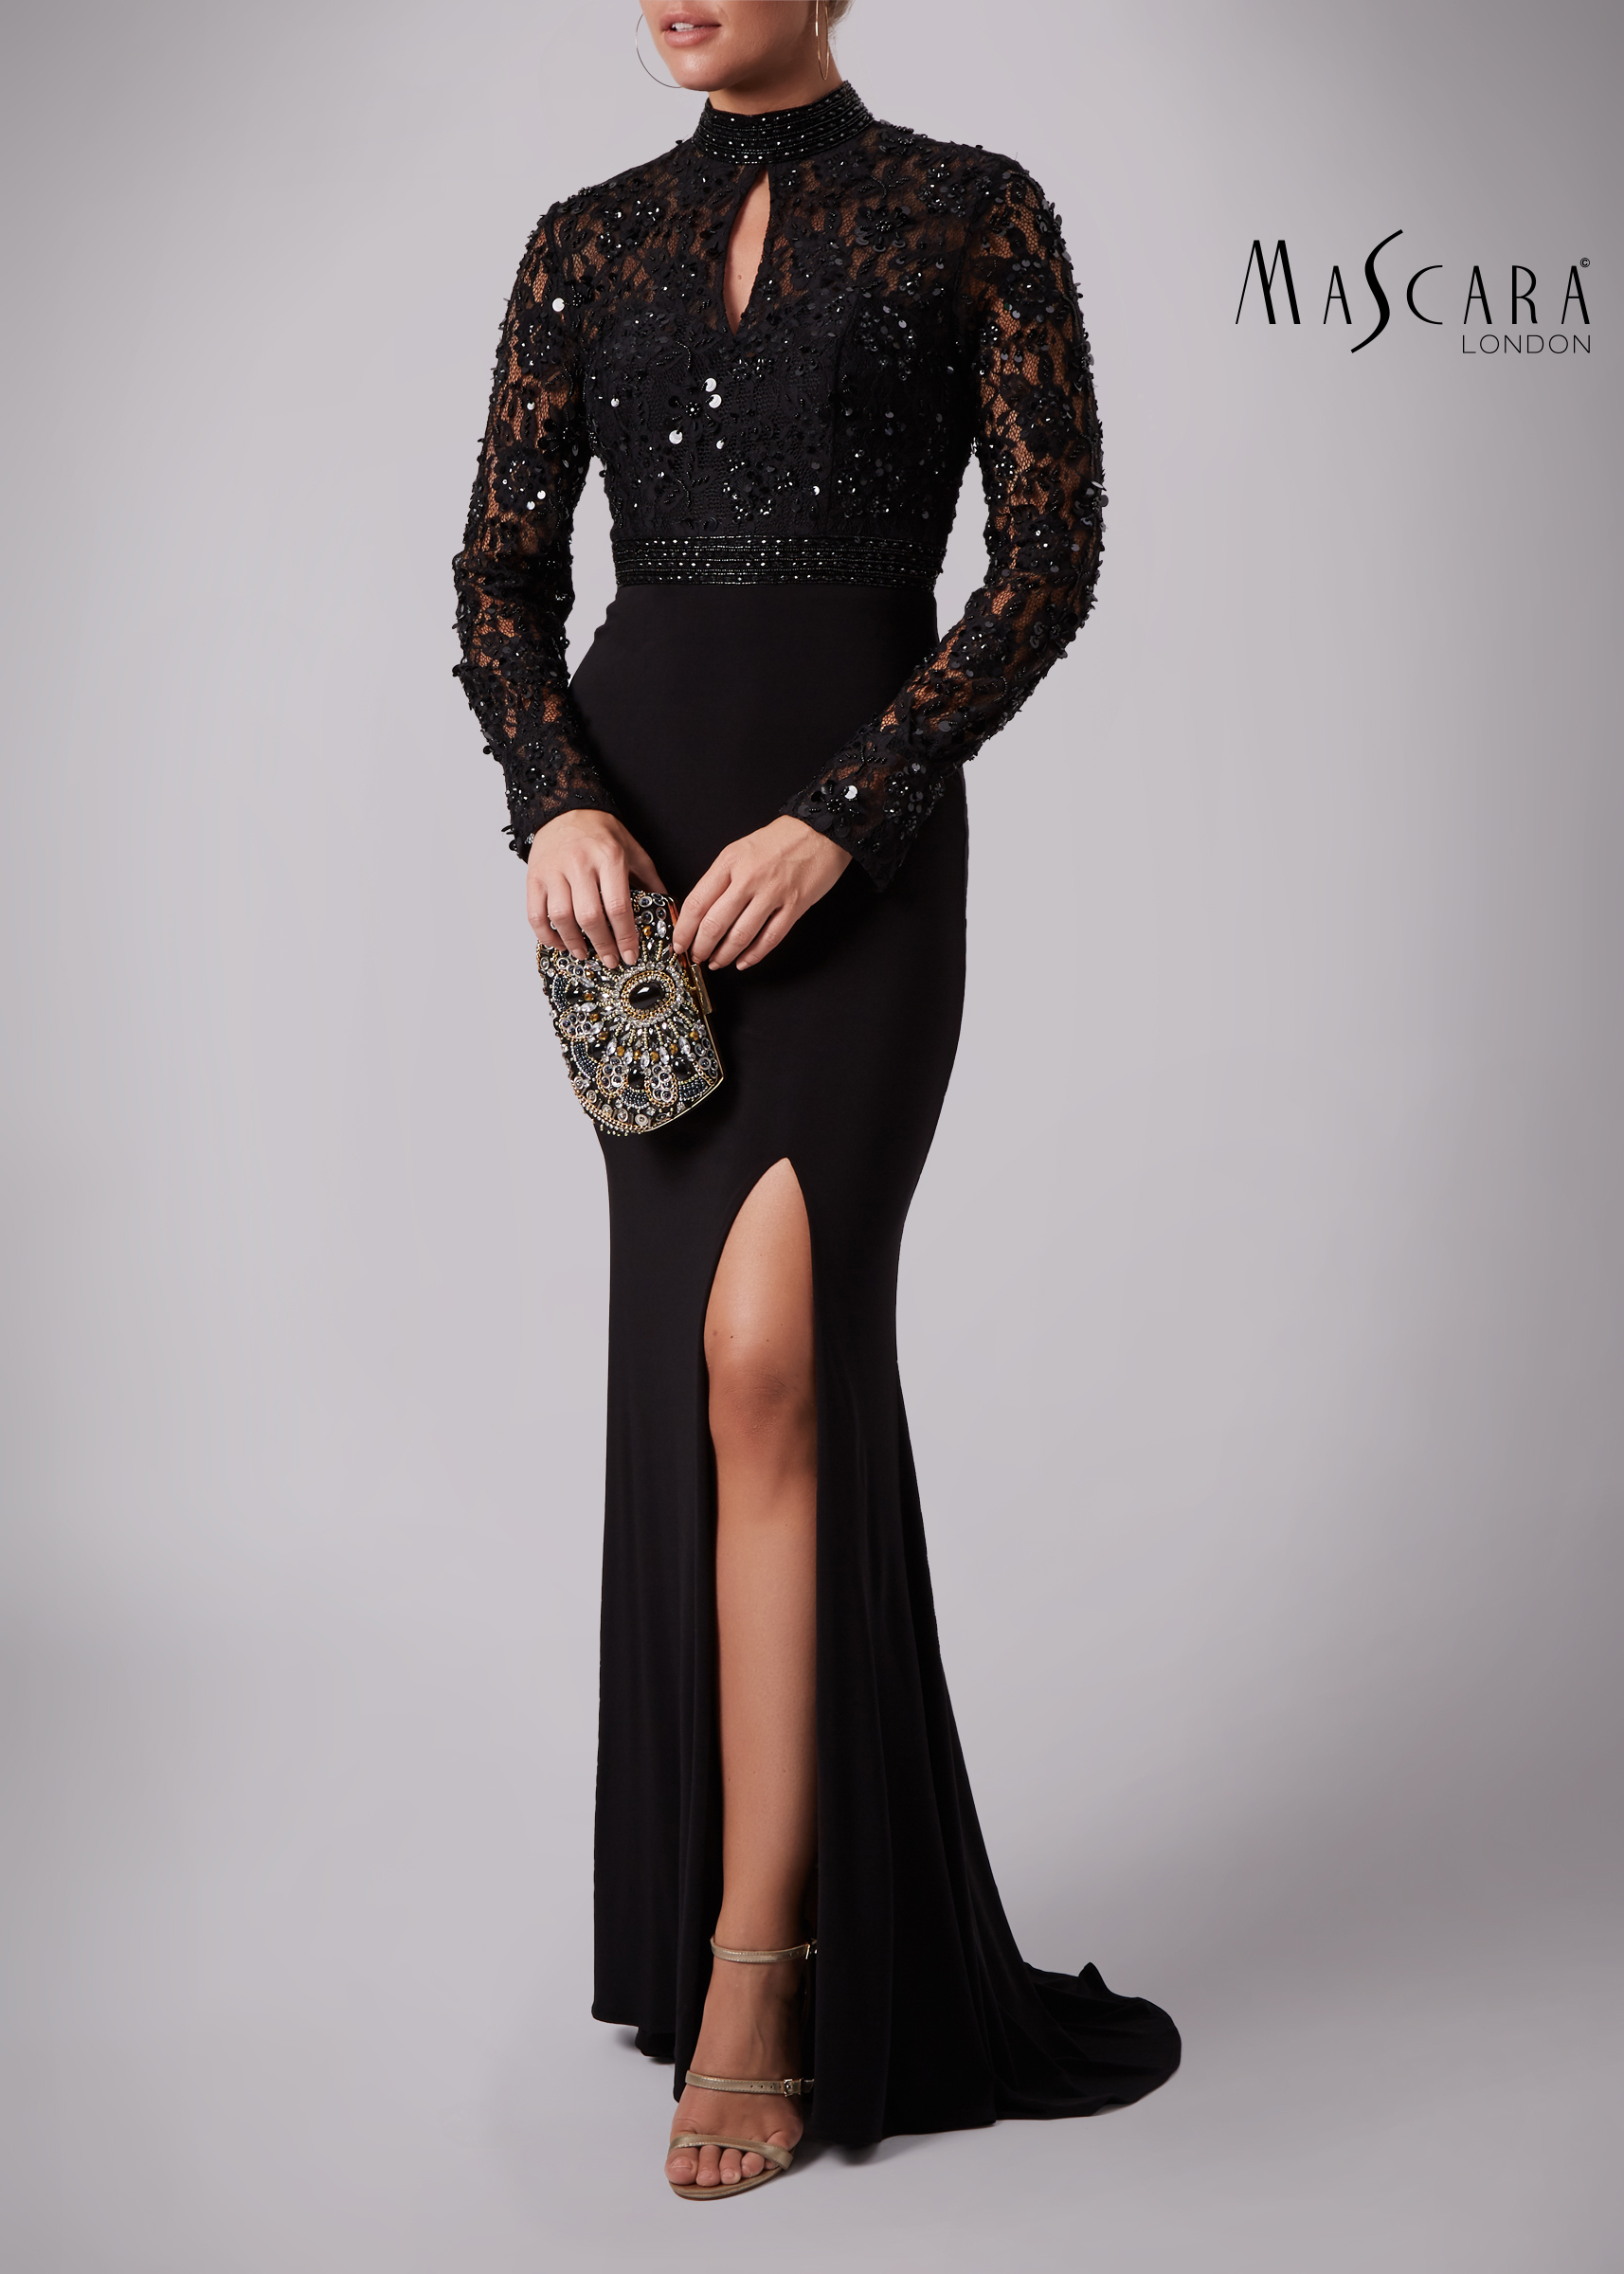 Black Tie Dresses |Celebrity Evening Wear